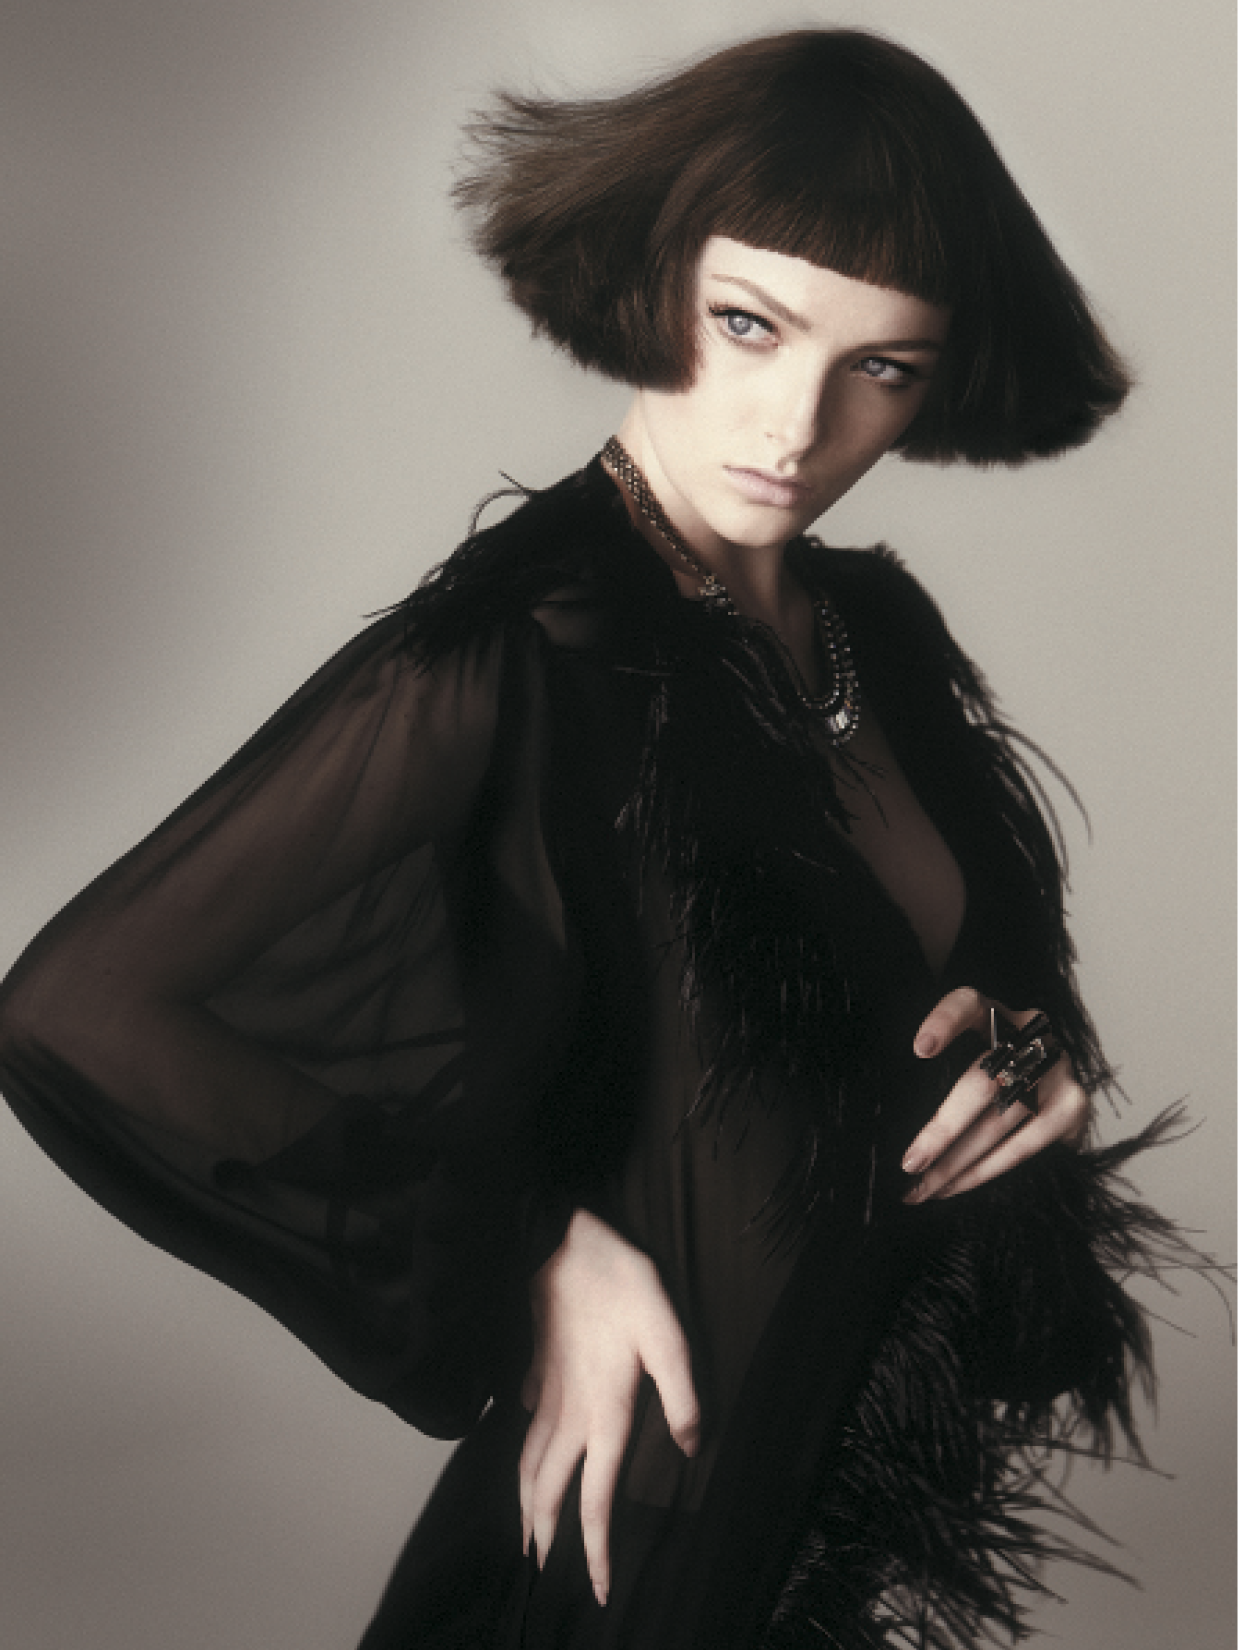 For this fluid bob, Smith used small clippers on a real- hair wig, cutting the back and sides with a block-graduation technique for a wide, stacked style. Using one finger of depth graduation, she cut to keep the fringe feathery. To finish, Smith used Shine Spray for gloss.